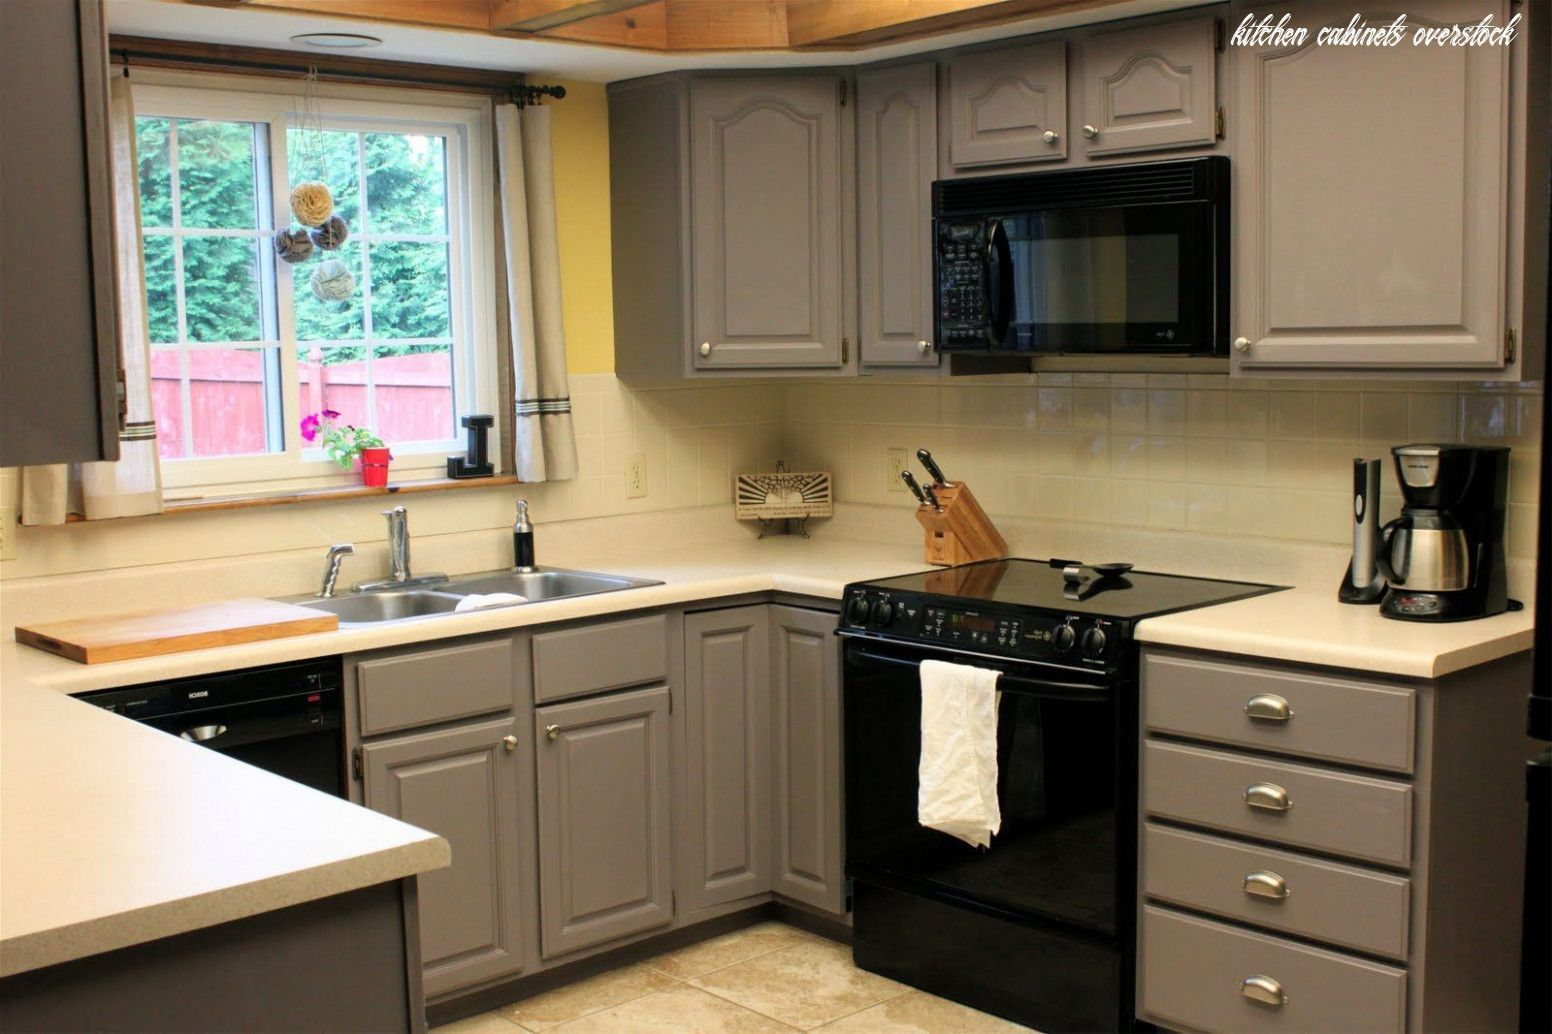 Five Things You Never Rely On Kitchen Cabinets Overstock Kitchencabinetsoverstock In 2020 Home Depot Kitchen Painted Kitchen Cabinets Colors Refacing Kitchen Cabinets